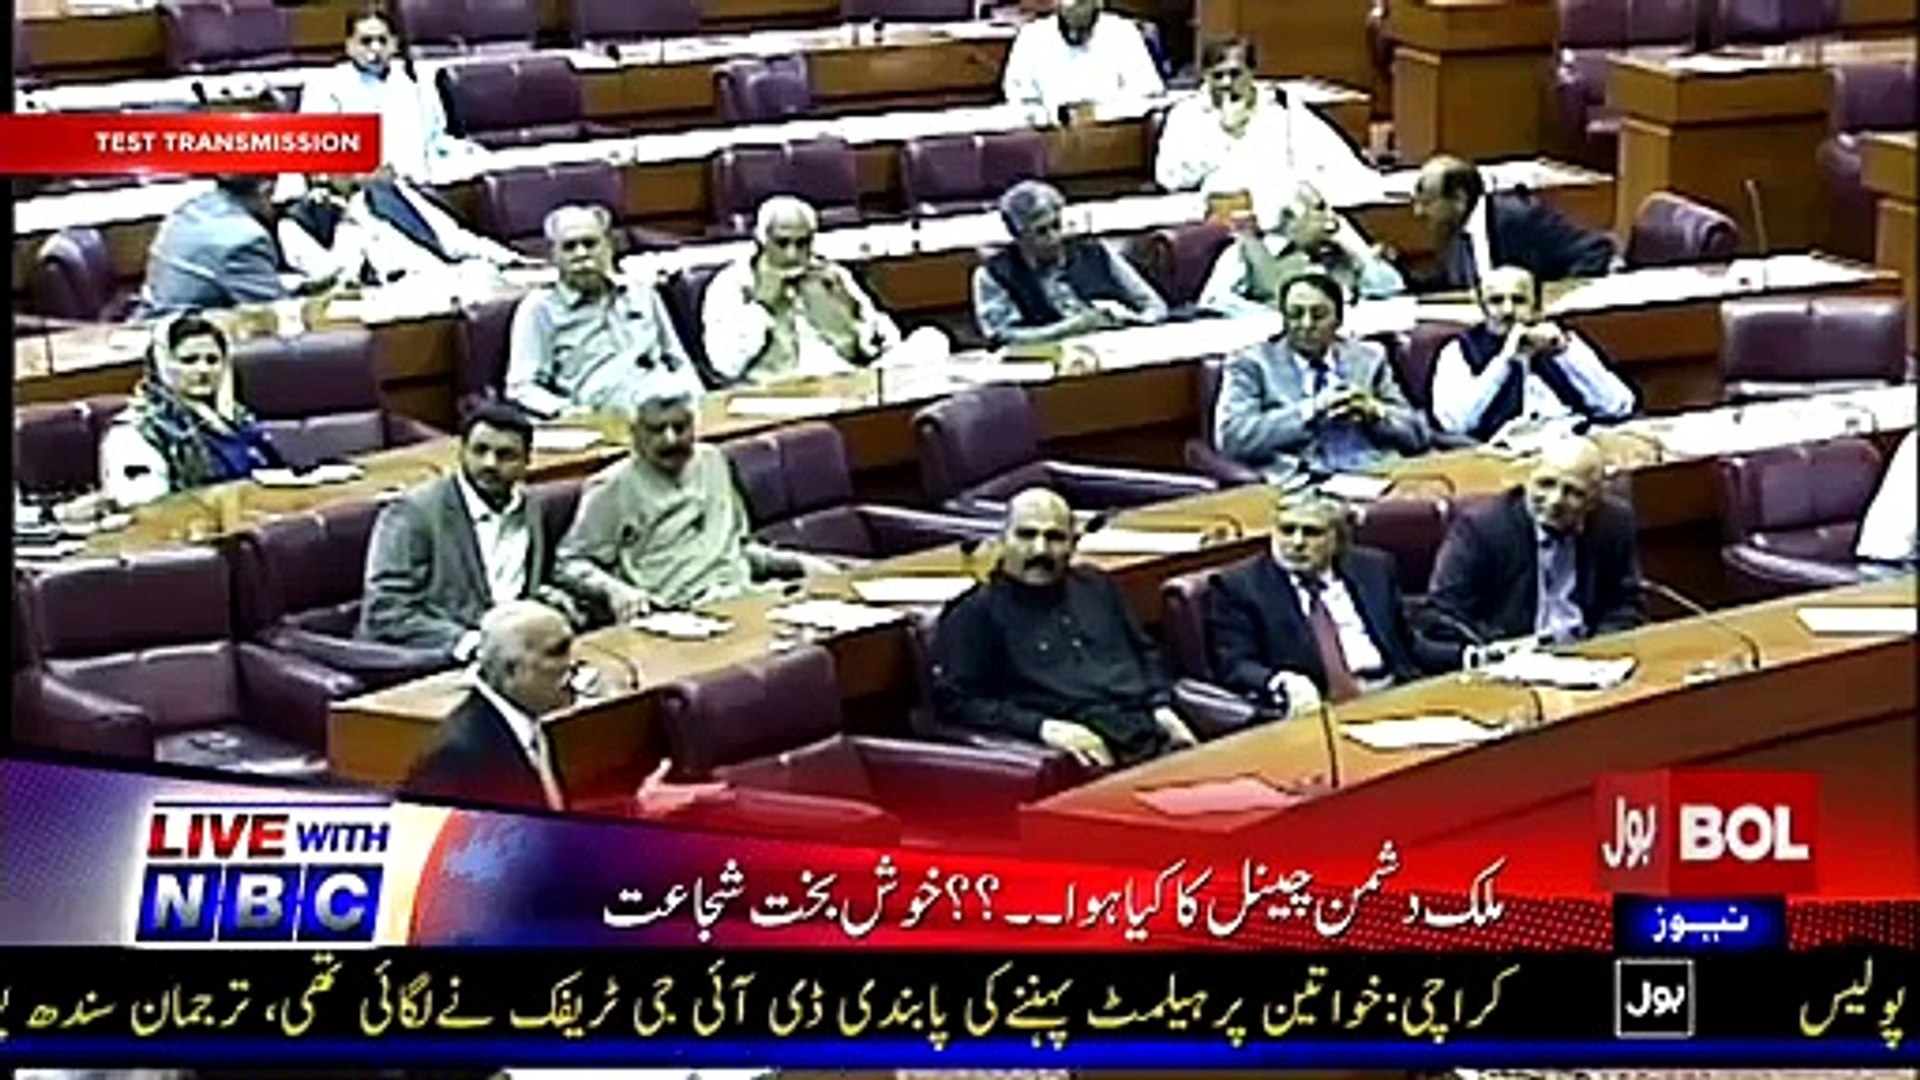 Khursheed Shah Blasting Speech In NA In Favor of BOL Tv, Not